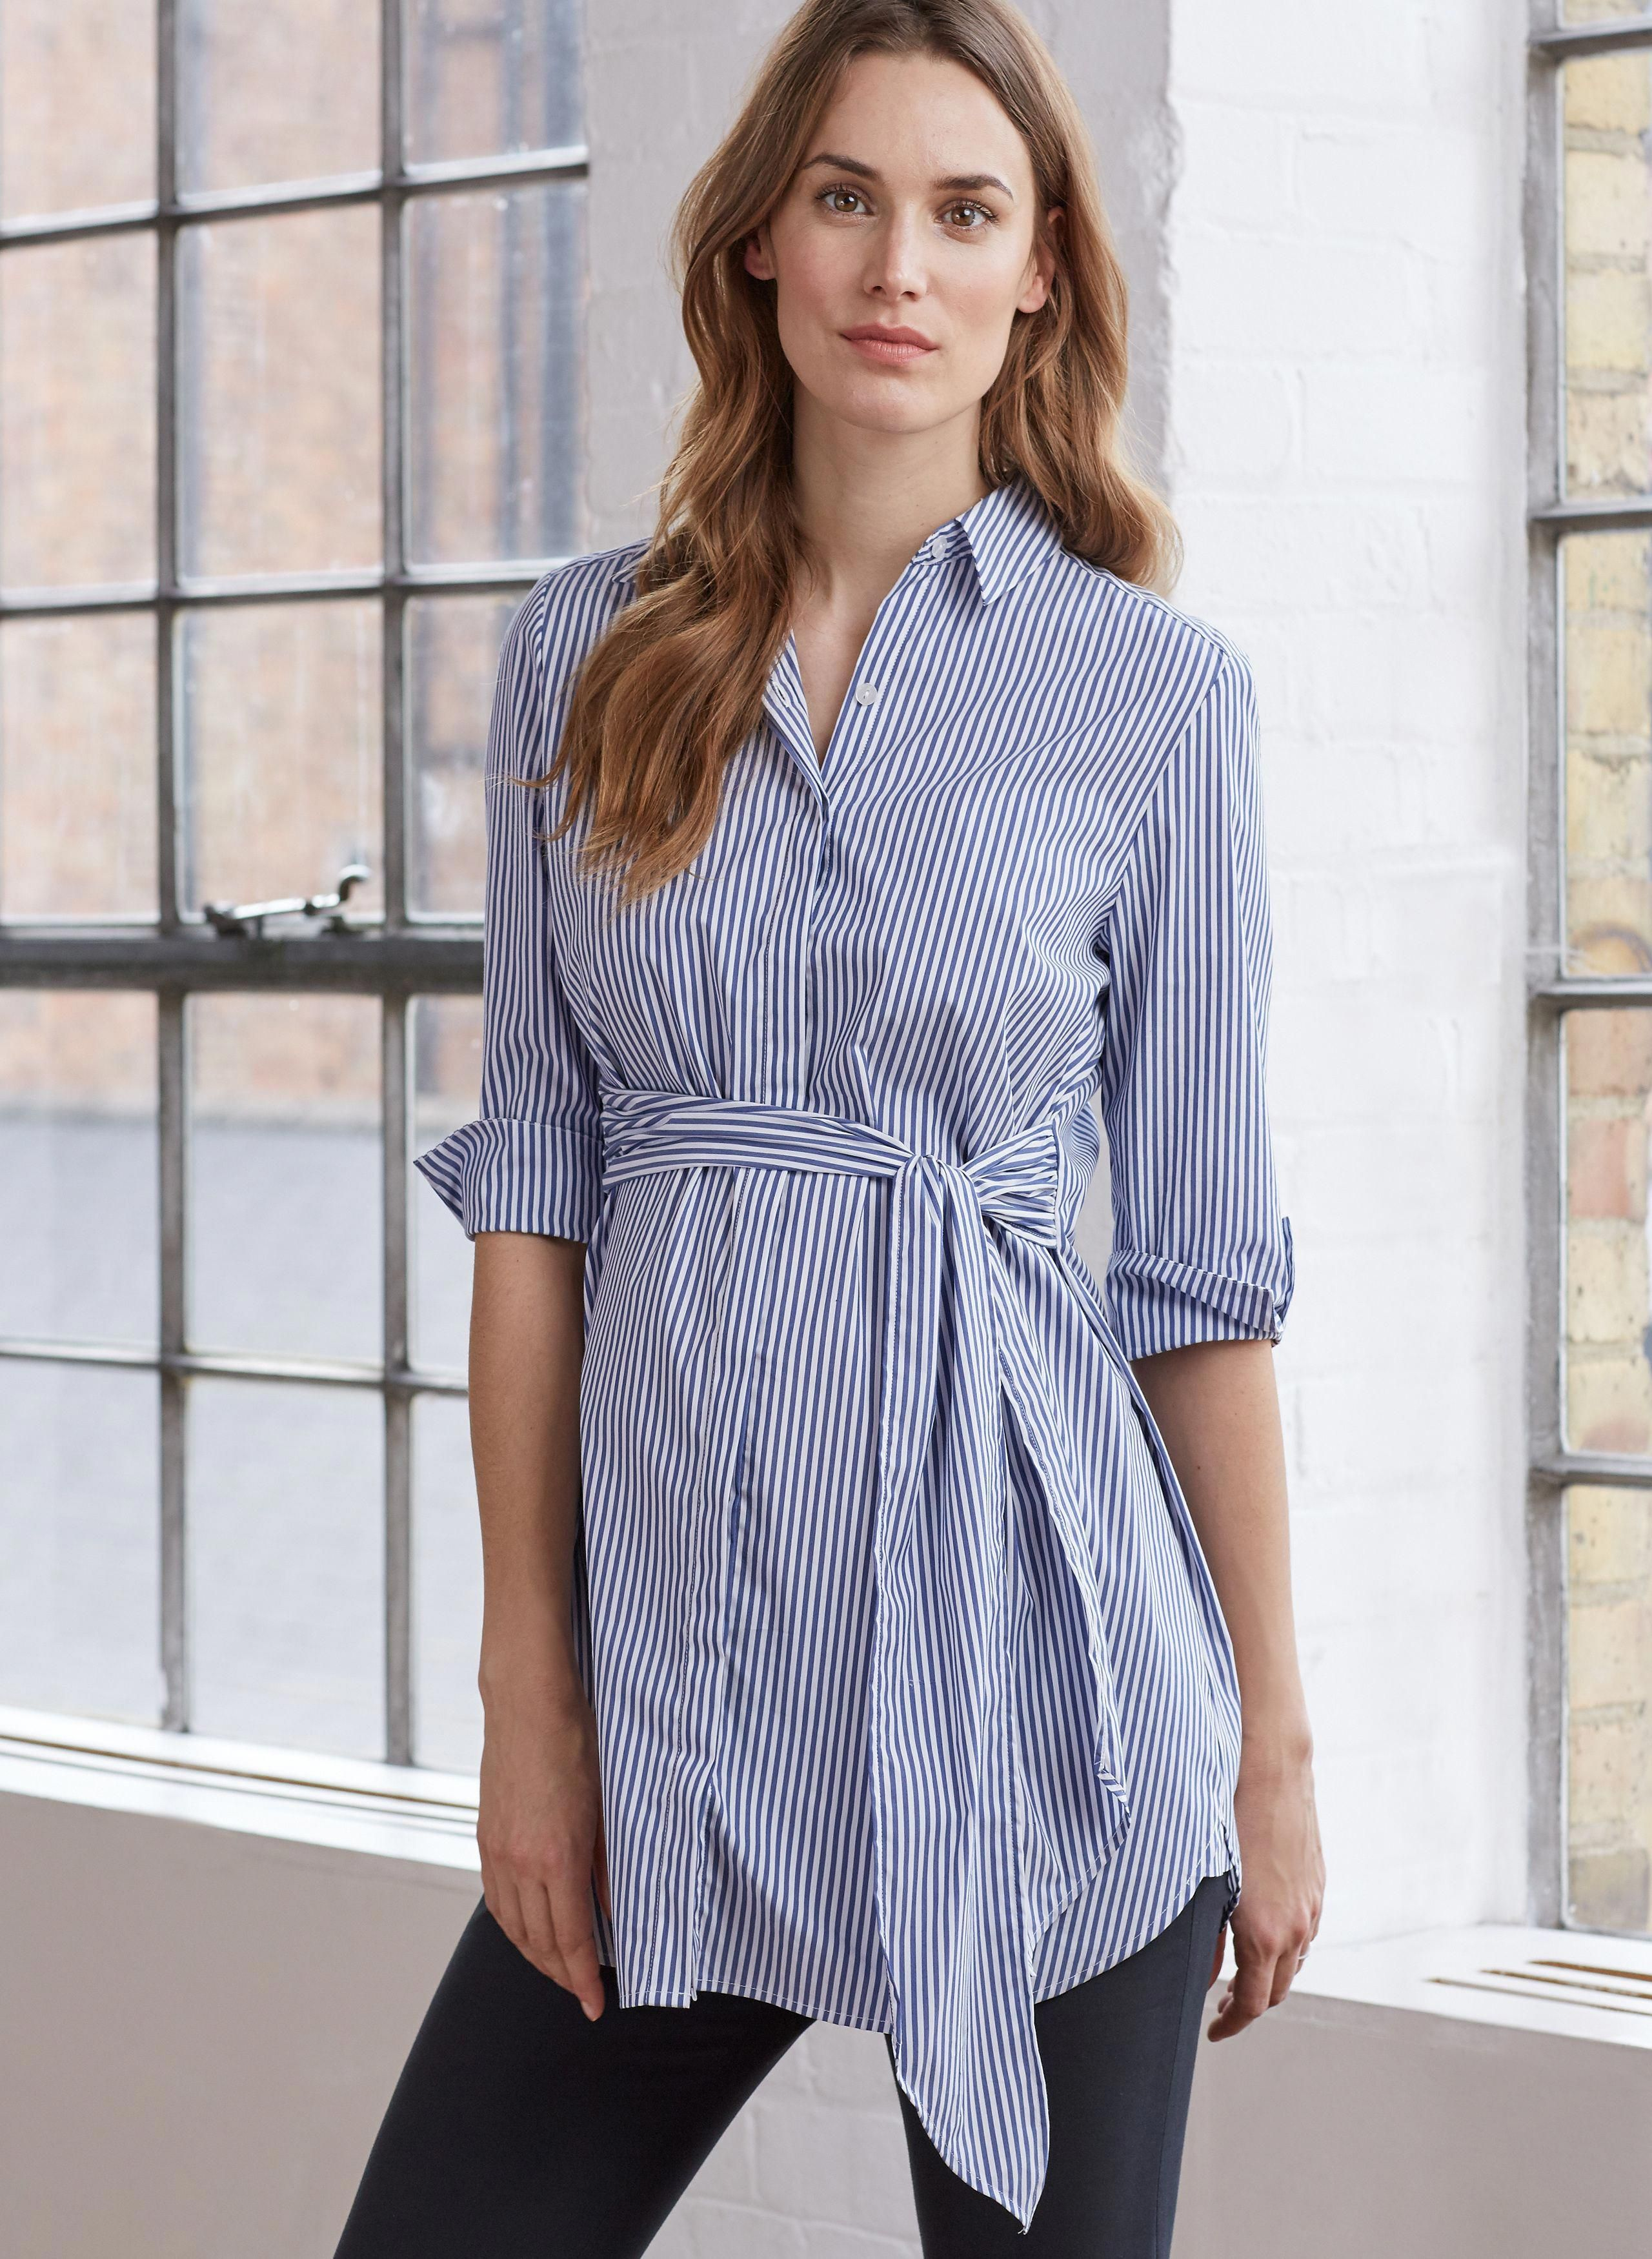 d70211af61e6d Dora Maternity Shirt in [colour] at Isabella Oliver. Shop our luxury  collection today for stylish, premium quality maternity clothes that will  last.